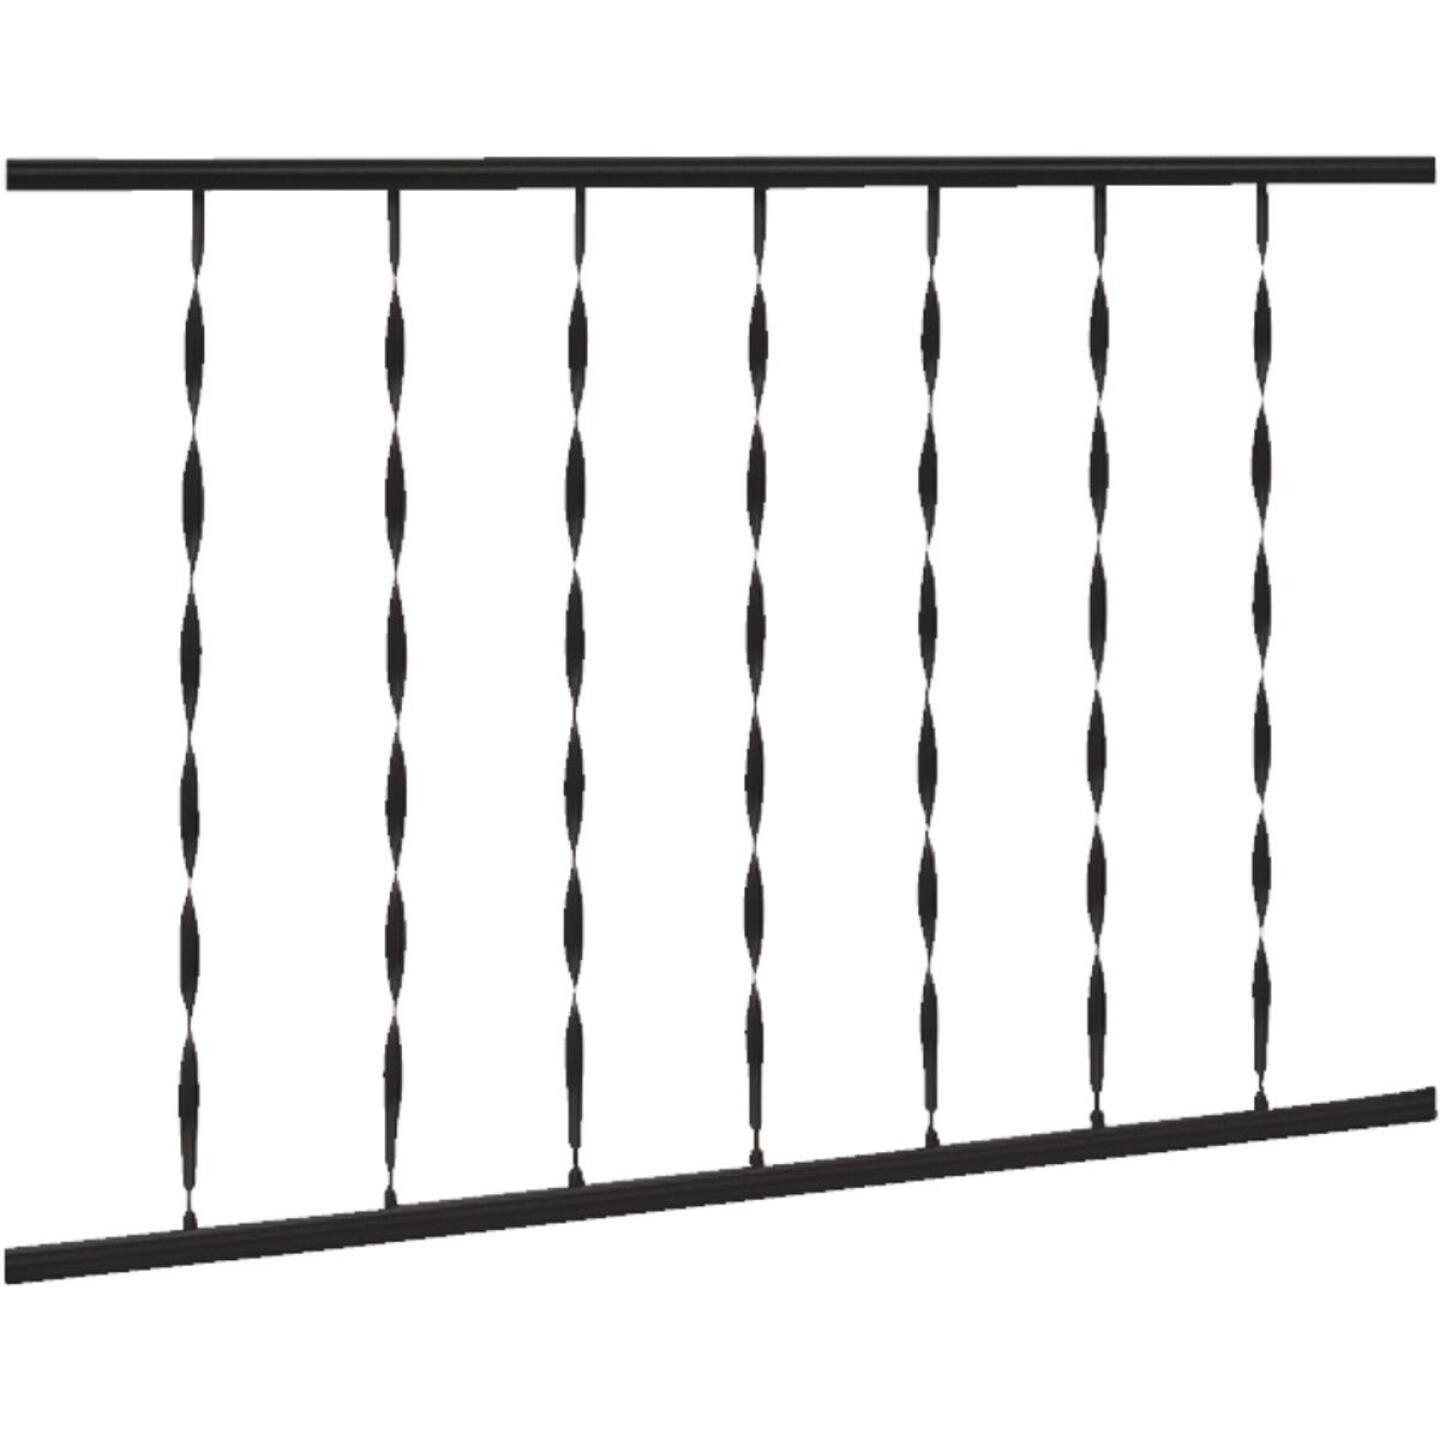 Gilpin Windsor 32 In. H. x 6 Ft. L. Wrought Iron Railing Image 1